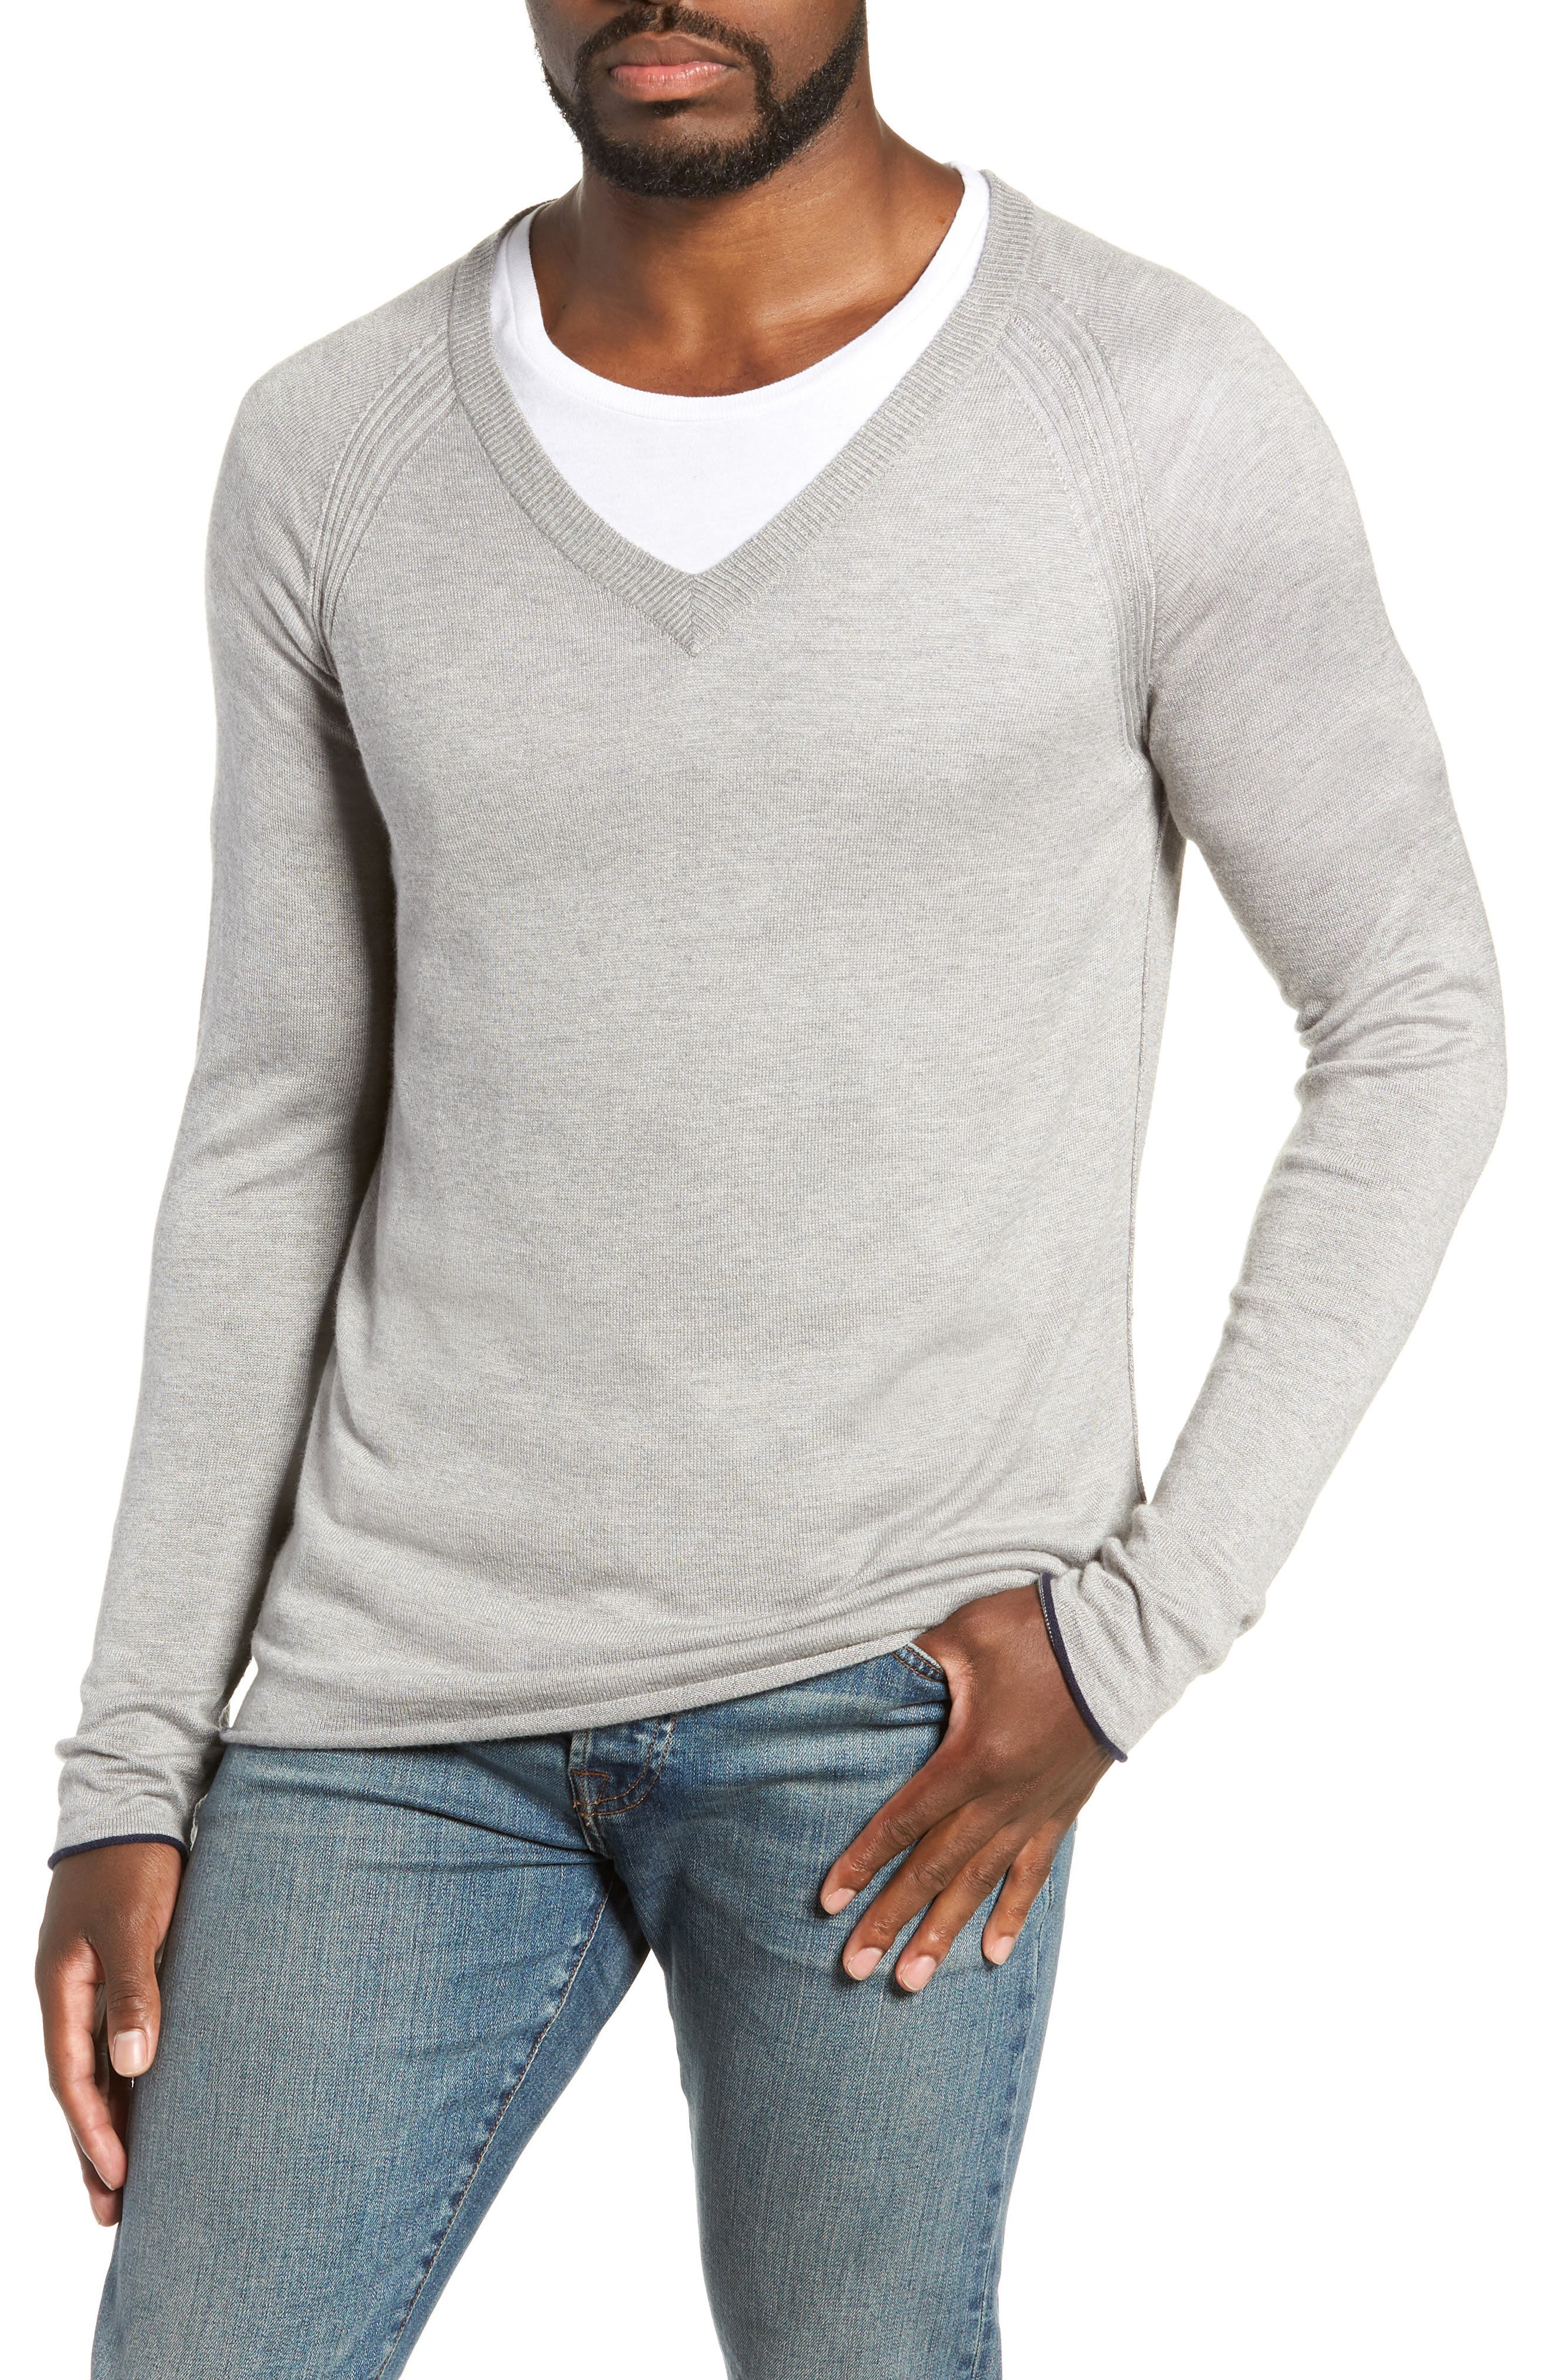 Salinas Cash V-Neck Sweater,                         Main,                         color, GREY HEATHER